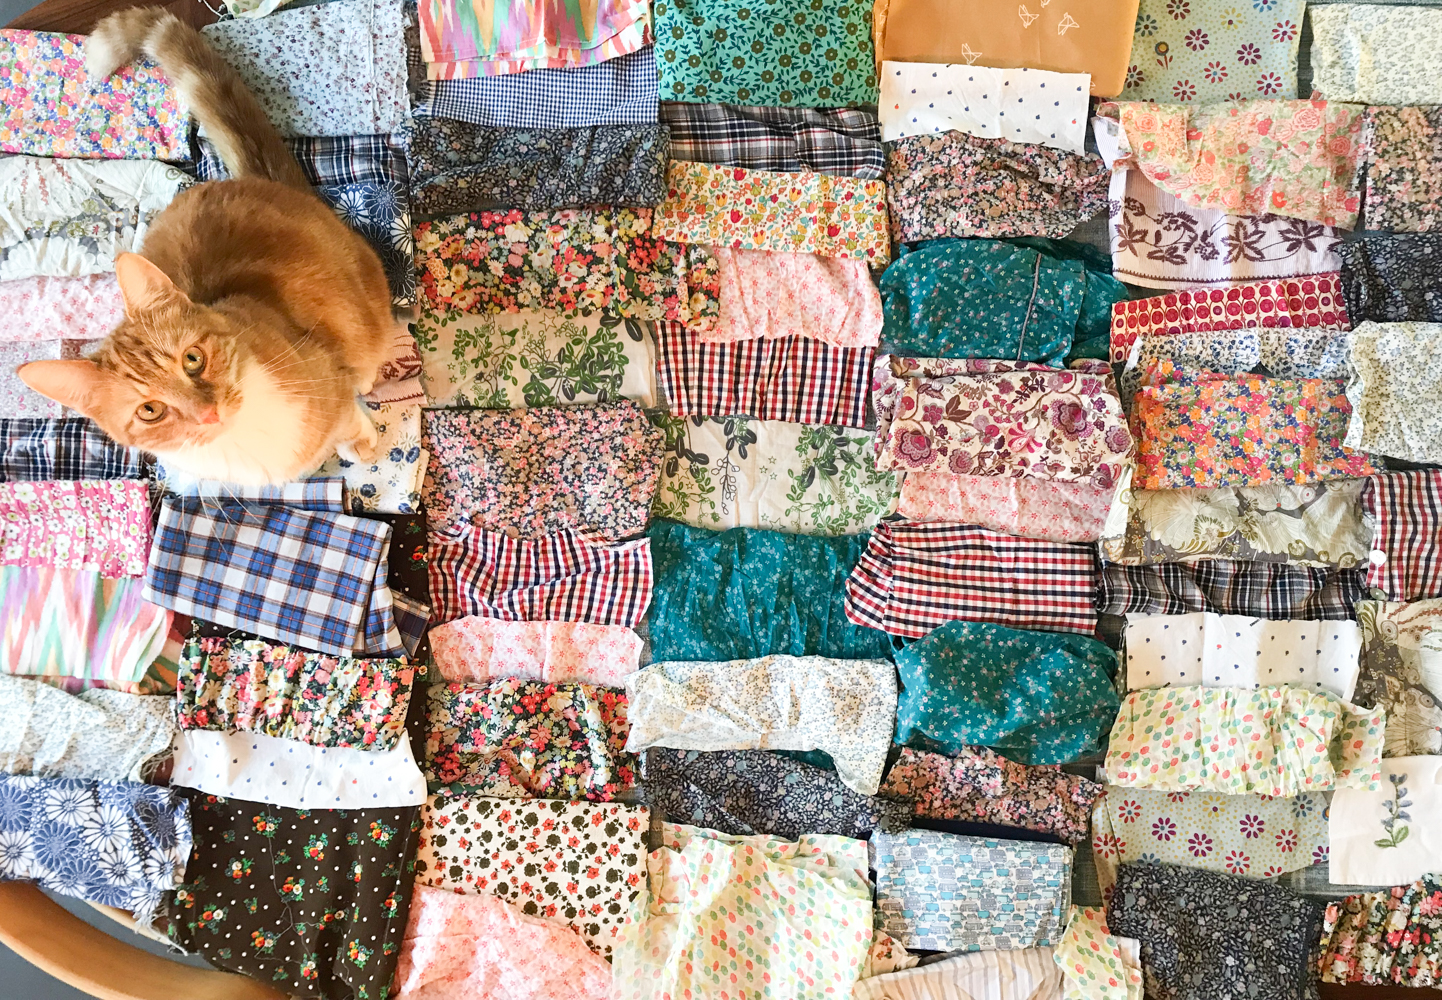 Making A Quilt From Fabric Remnants And Old Dresses Babyccino Kids